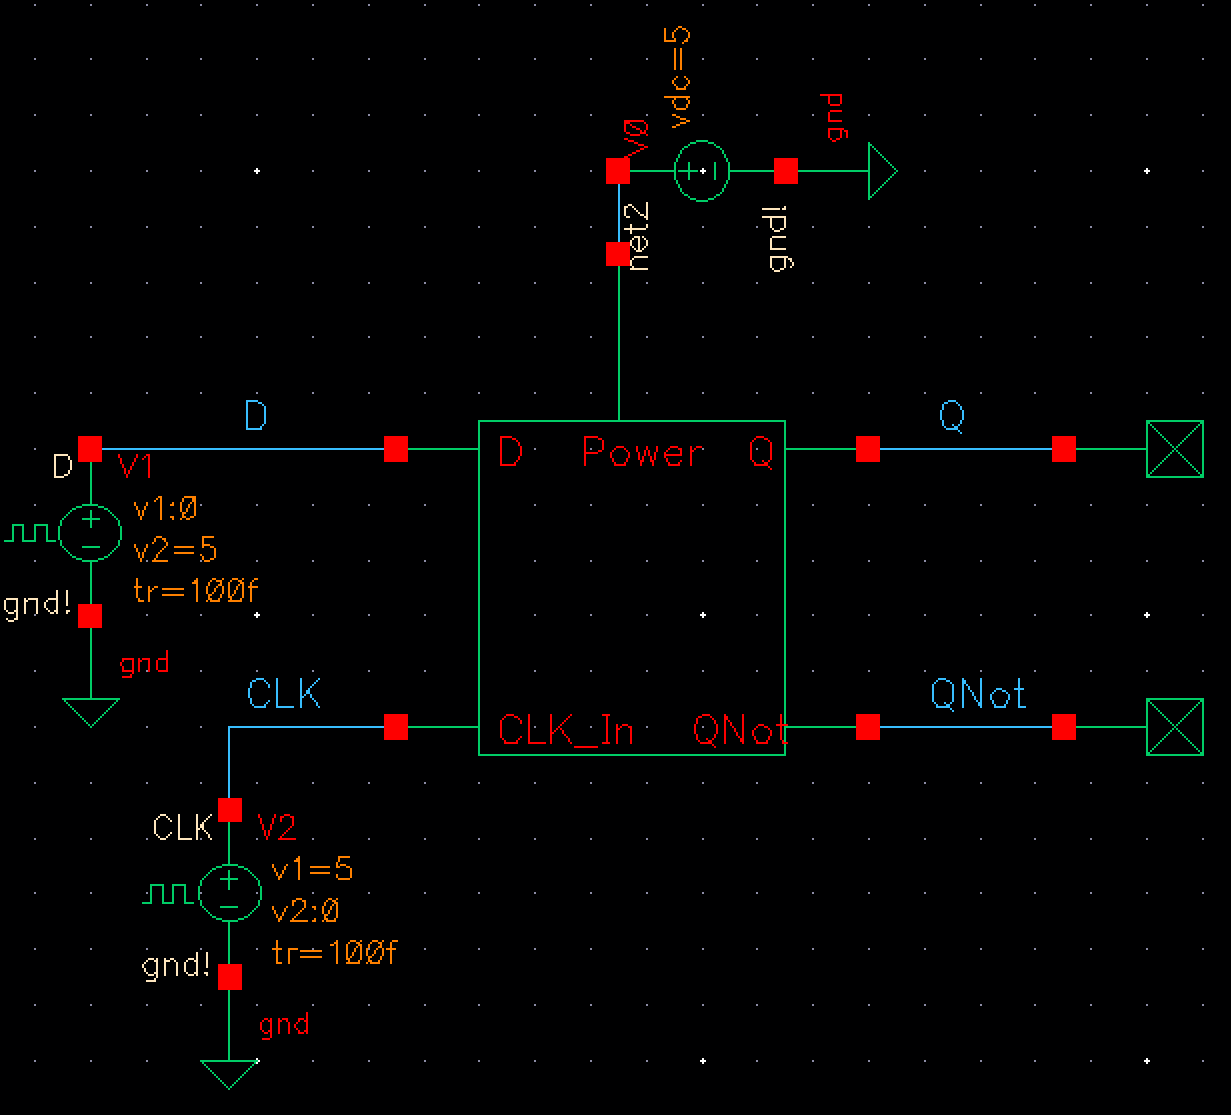 Jonathan Youngs Ee 421 Digital Electronics Lab Project Inverter Oscillator Circuit Simulator Figure 7 This Is The Simulation Schematic Used To Verify Device Functionality Note Vdd Set 5 Volts Which For Cmos Devices